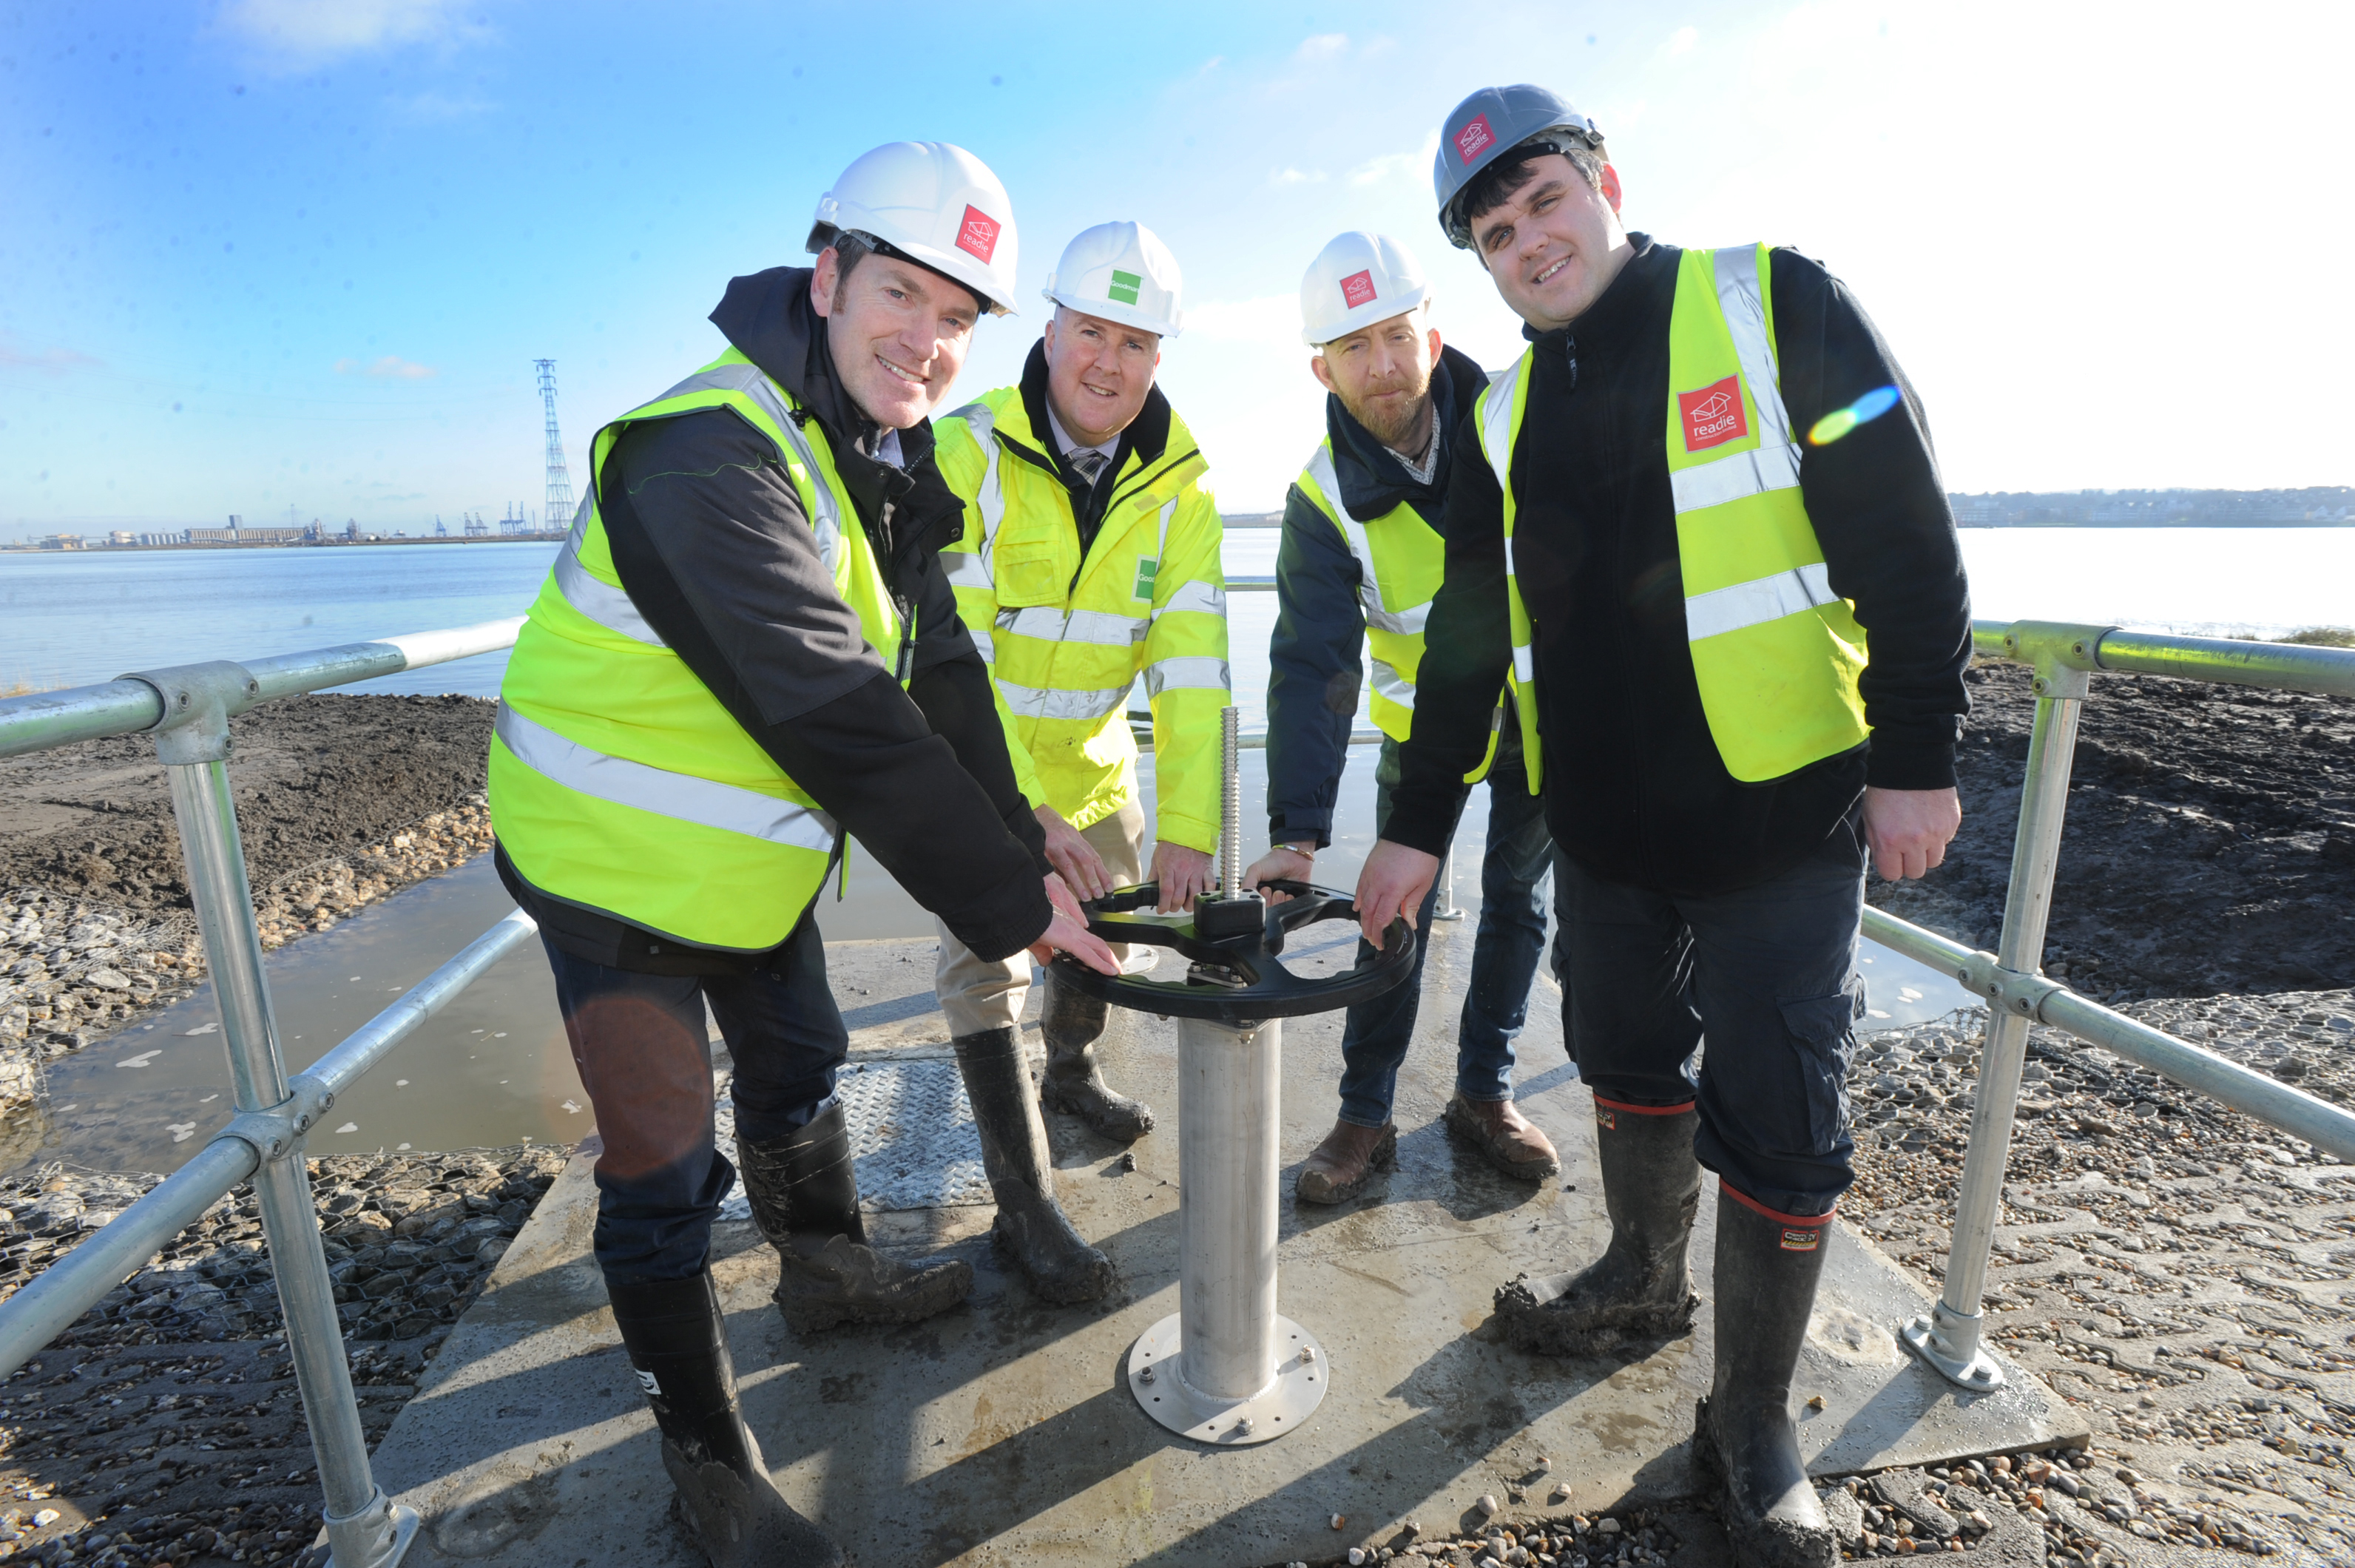 Environmental officers opening the inlet valve to allow the river Thames water into the Oliver Road Lagoons development in Essex